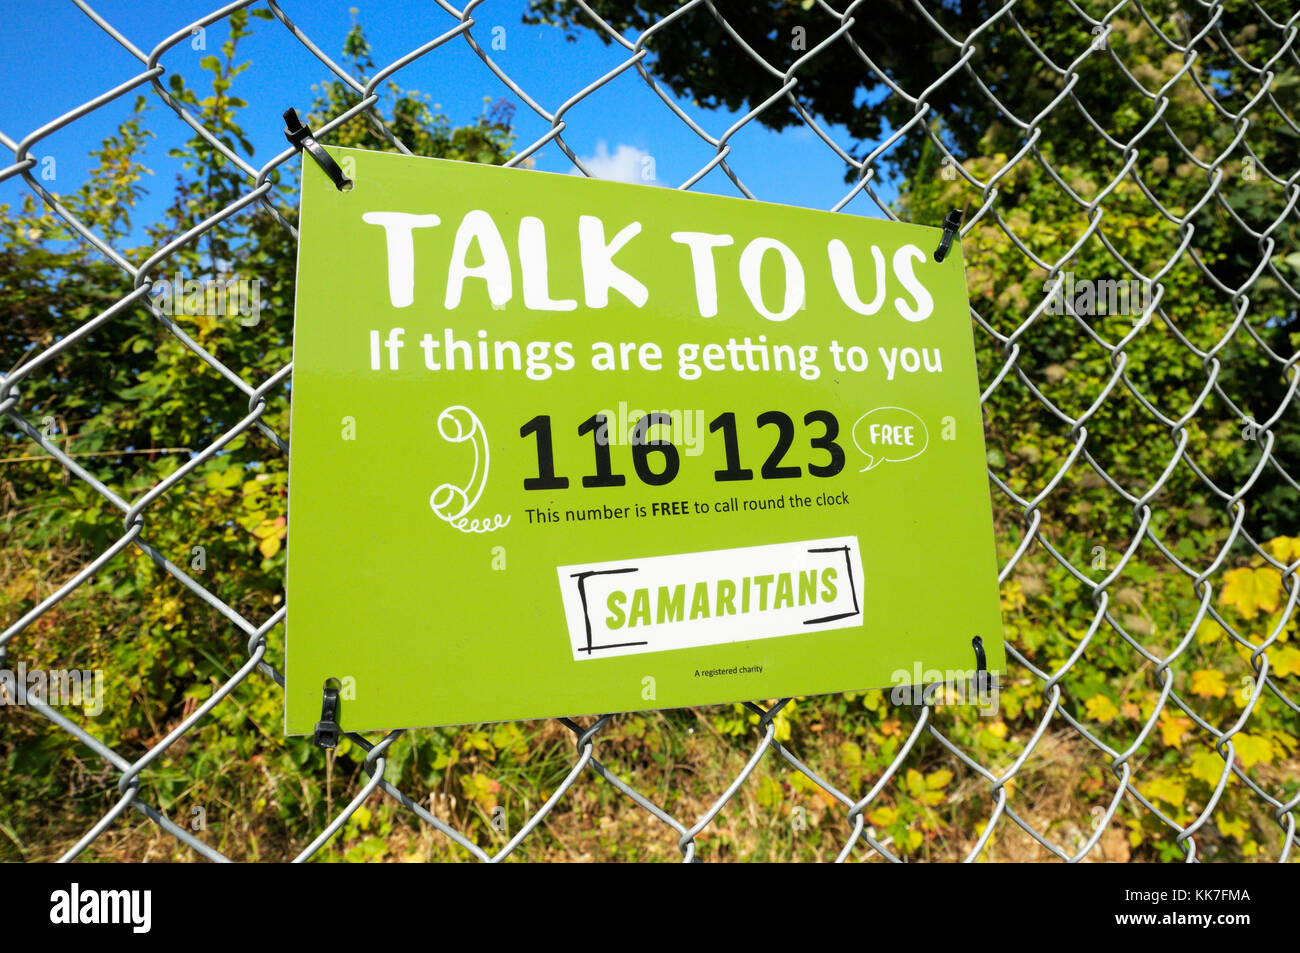 Samaritans sign with telephone helpline number Stock Photo